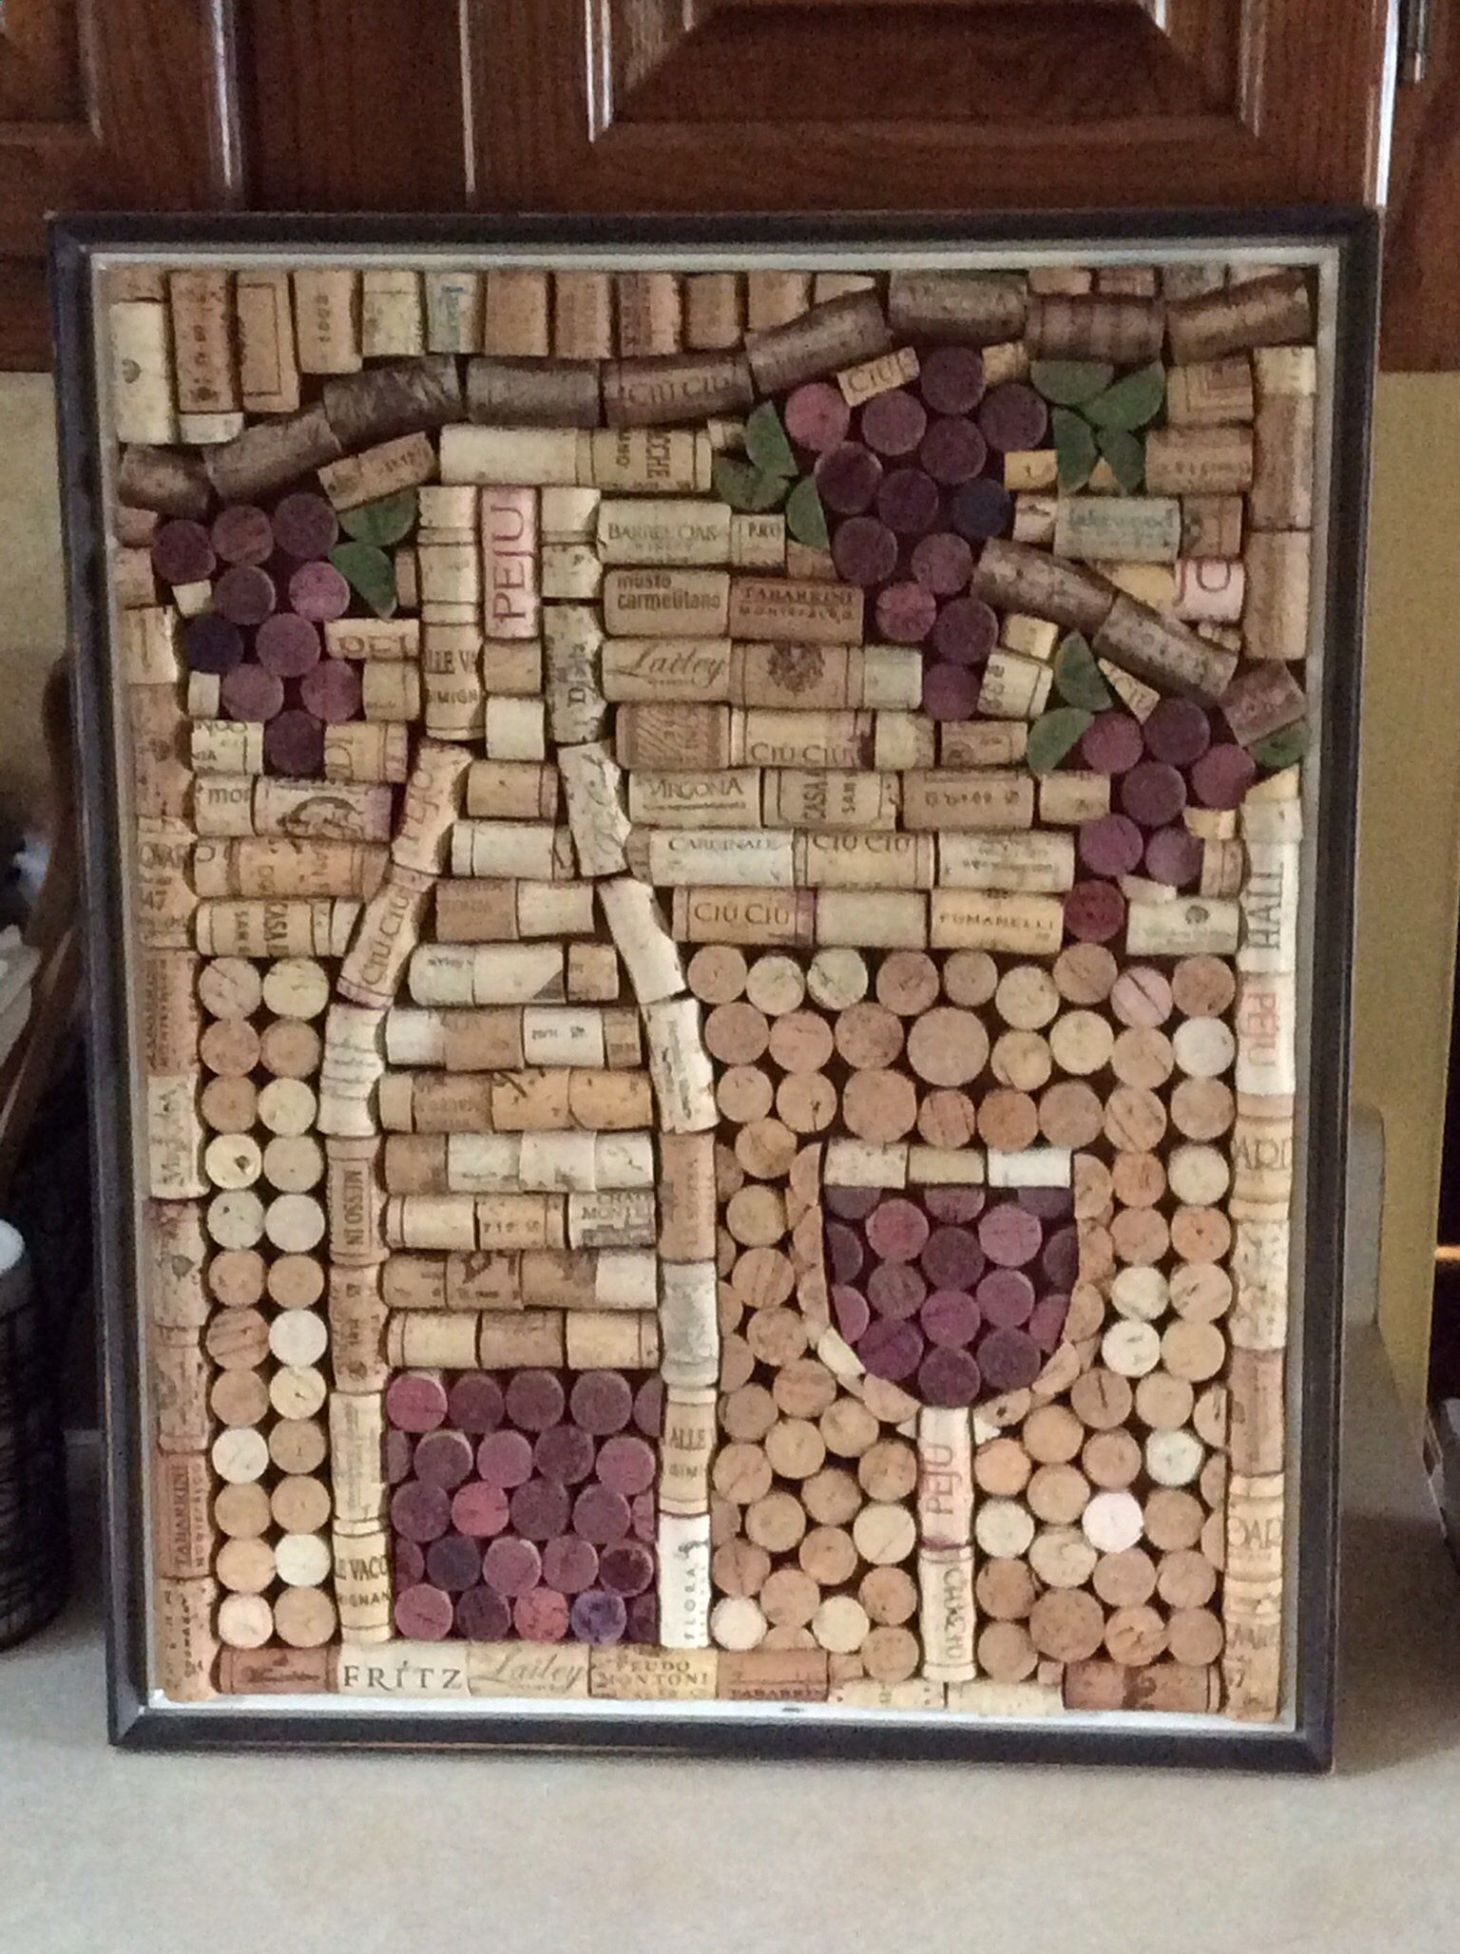 Best Wine Cork Ideas For Home Decorations 12012 #homedecorideas